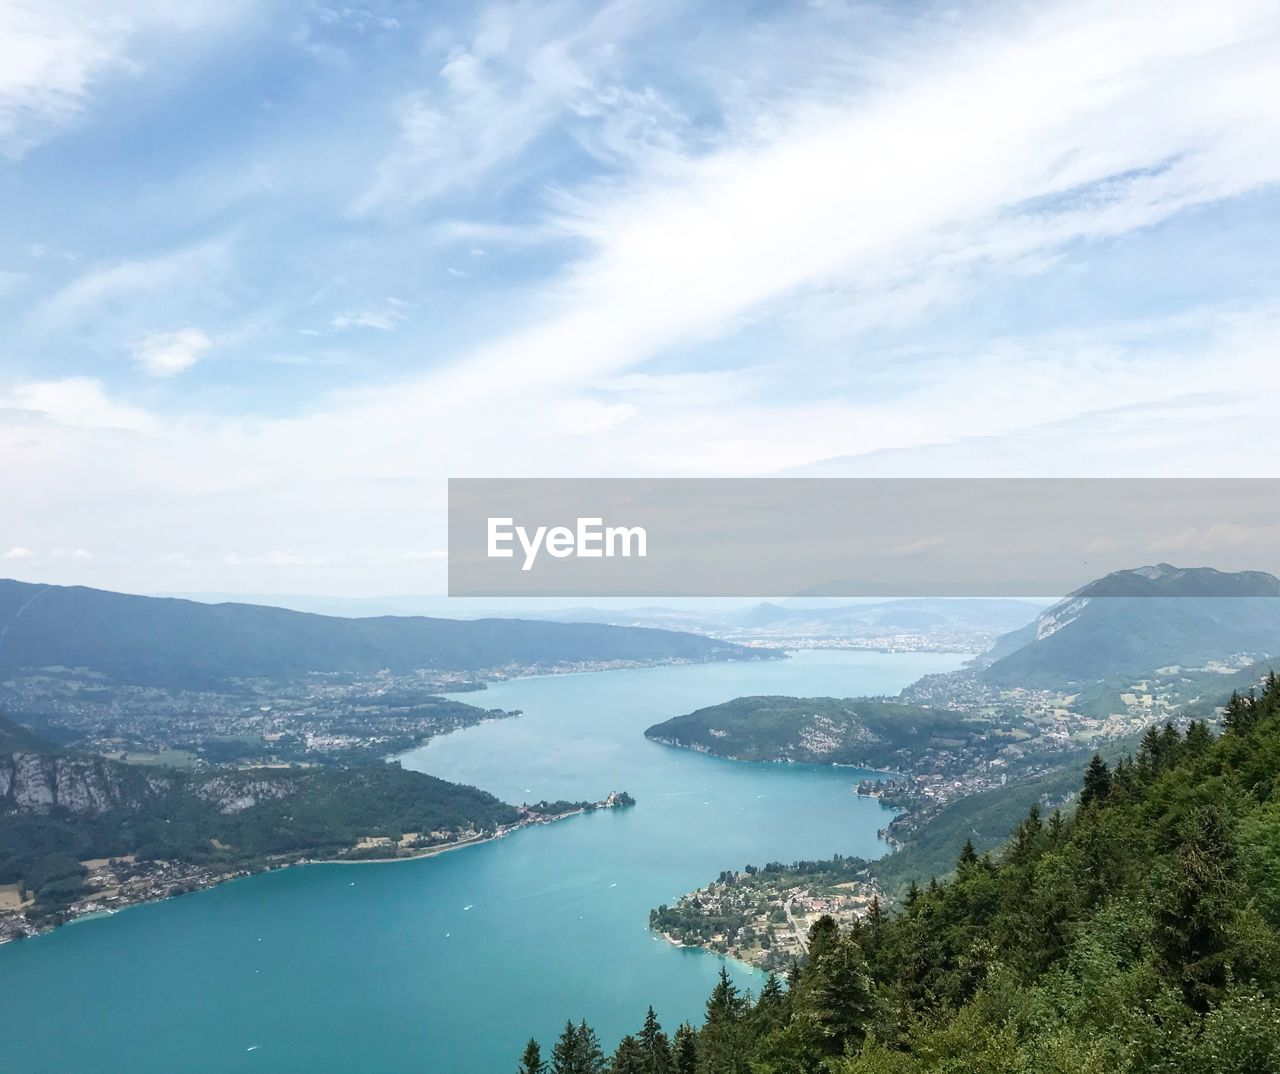 water, mountain, cloud - sky, scenics - nature, sky, beauty in nature, nature, day, tranquil scene, architecture, high angle view, tree, tranquility, no people, plant, mountain range, built structure, sea, building exterior, outdoors, cityscape, bay